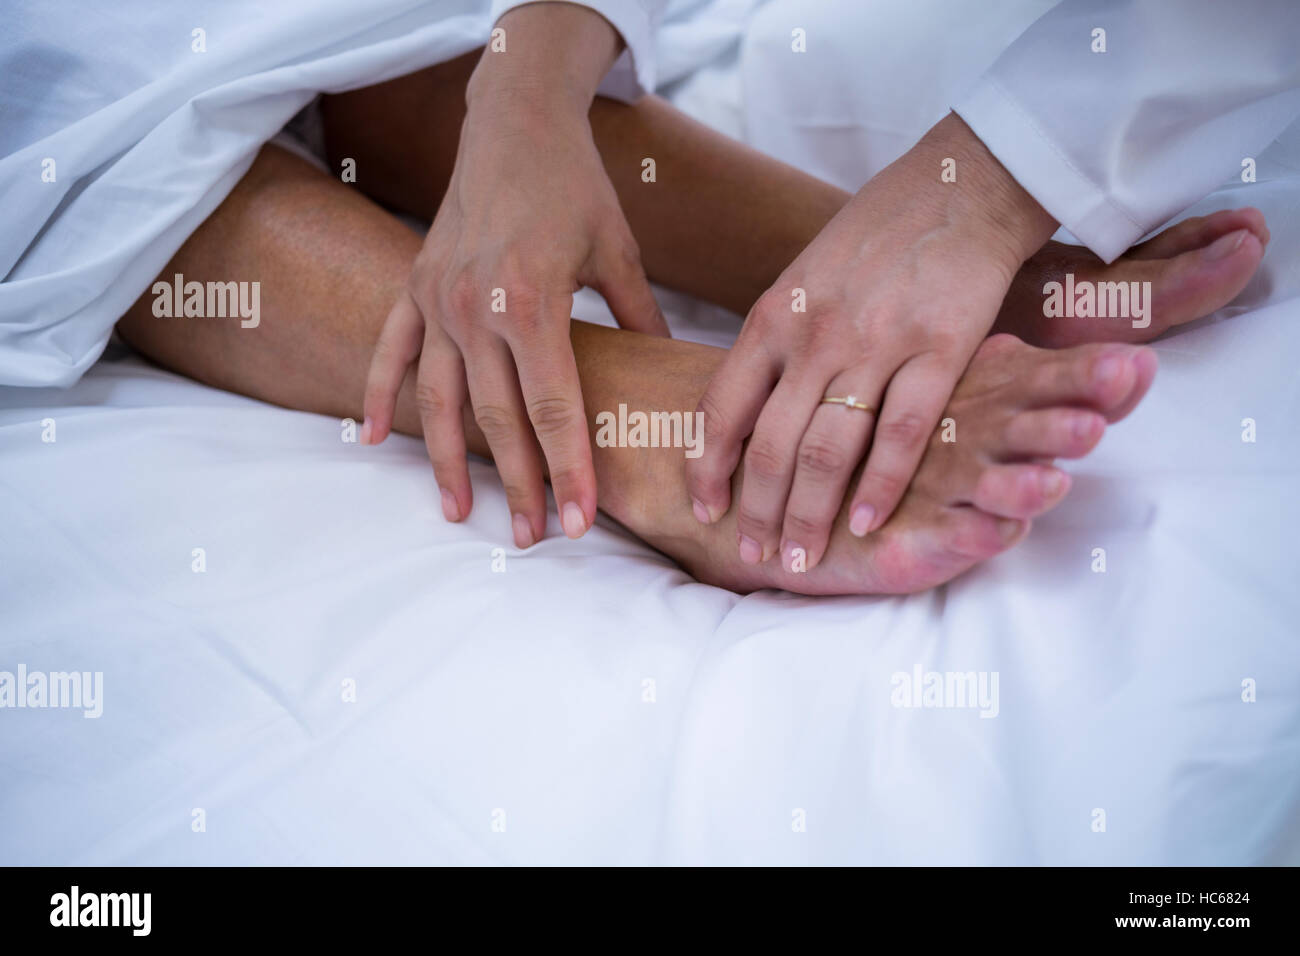 Doctor giving foot treatment to patient - Stock Image